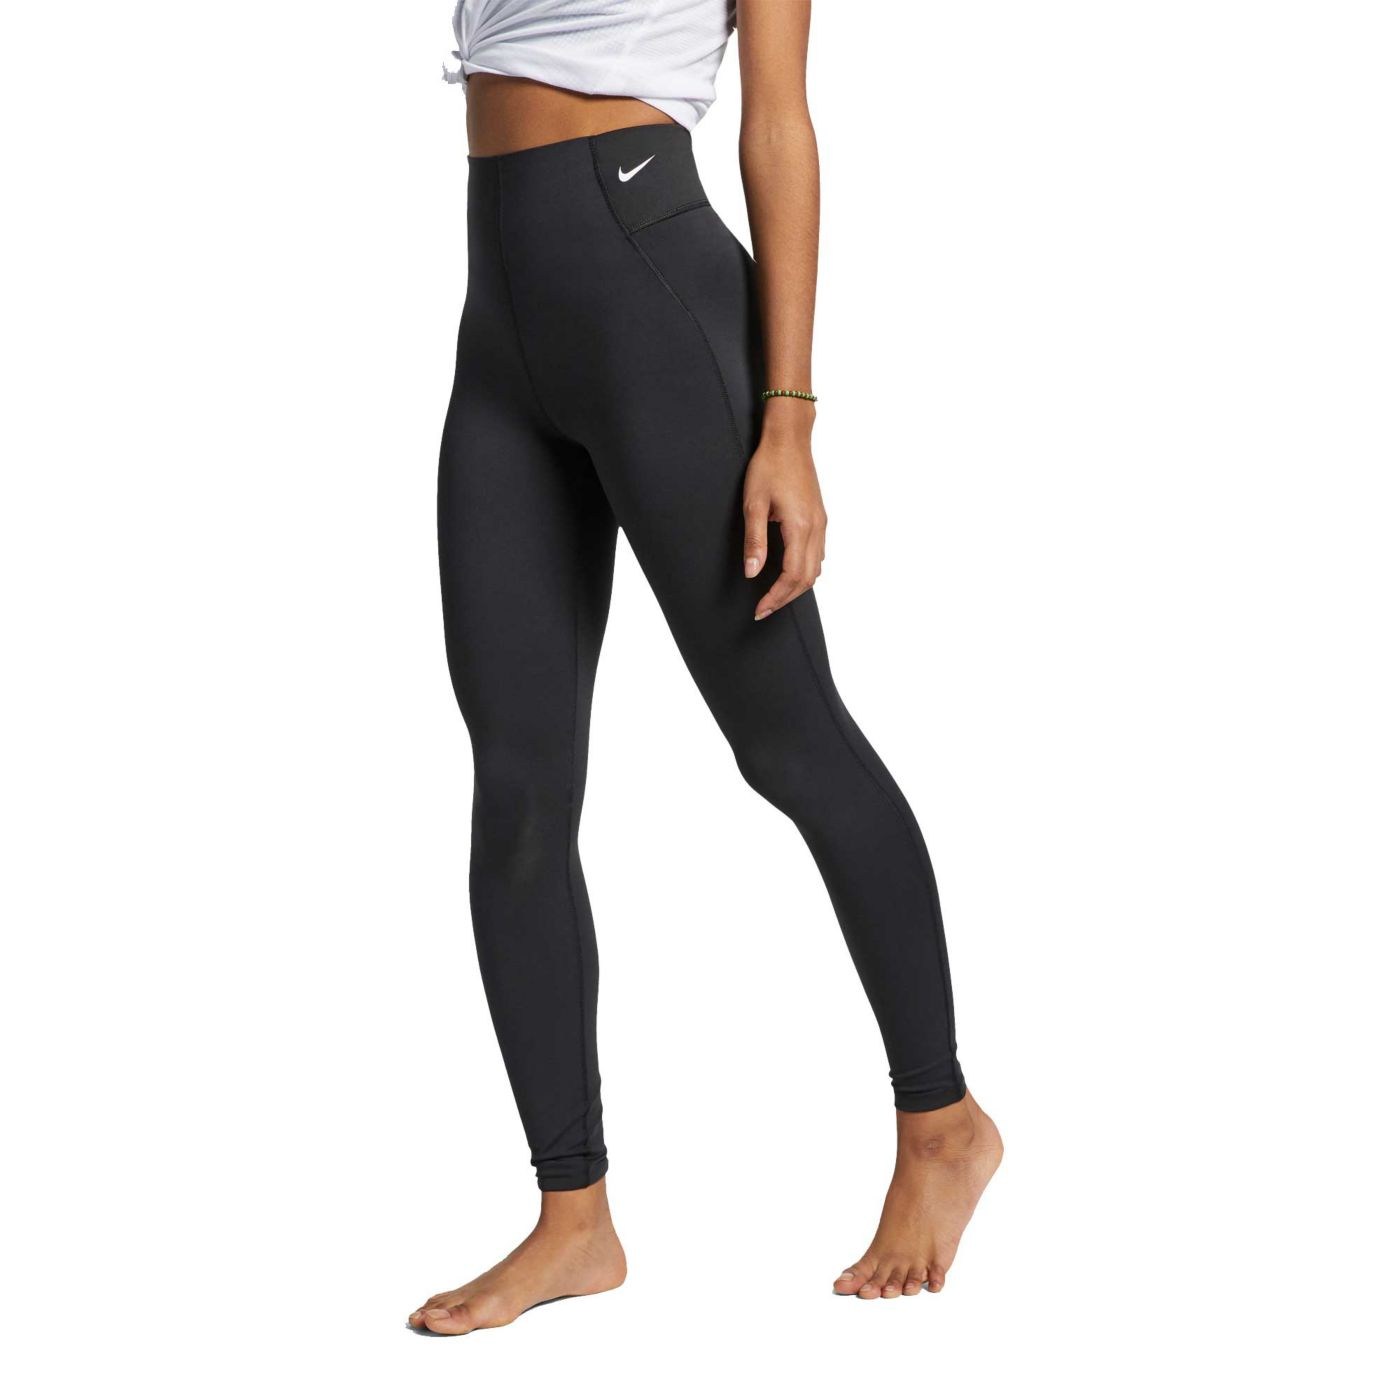 Nike One Women's Sculpt Victory Training Tights